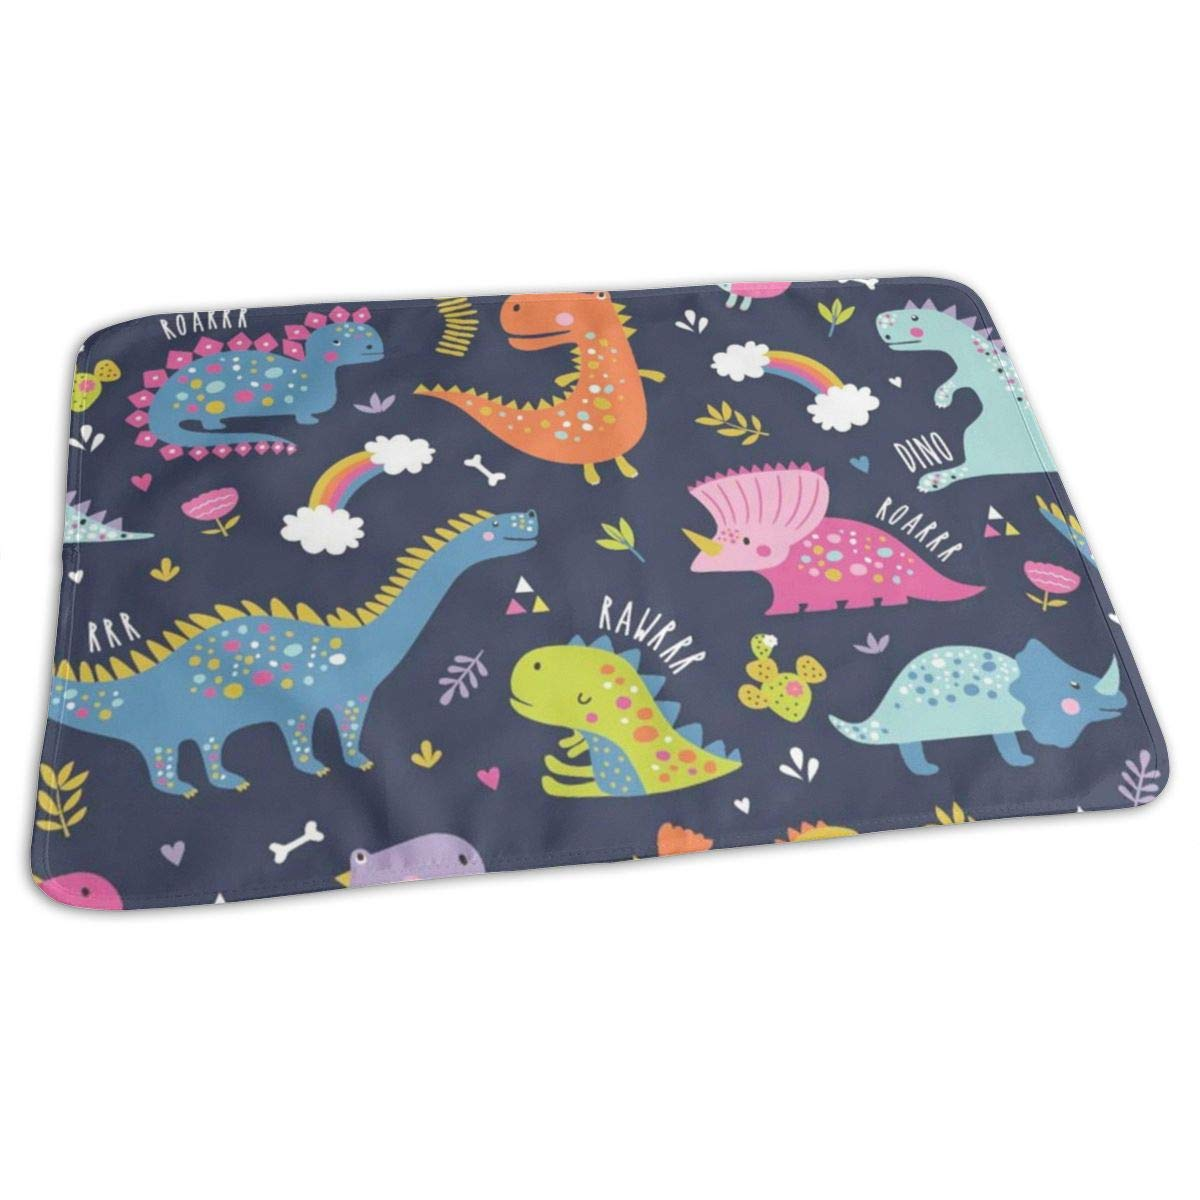 Osvbs Lovely Baby Reusable Waterproof Portable Cute Funny Kids Dinosaurs Pattern Changing Pad Home Travel 27.5''x19.7'' by Osvbs